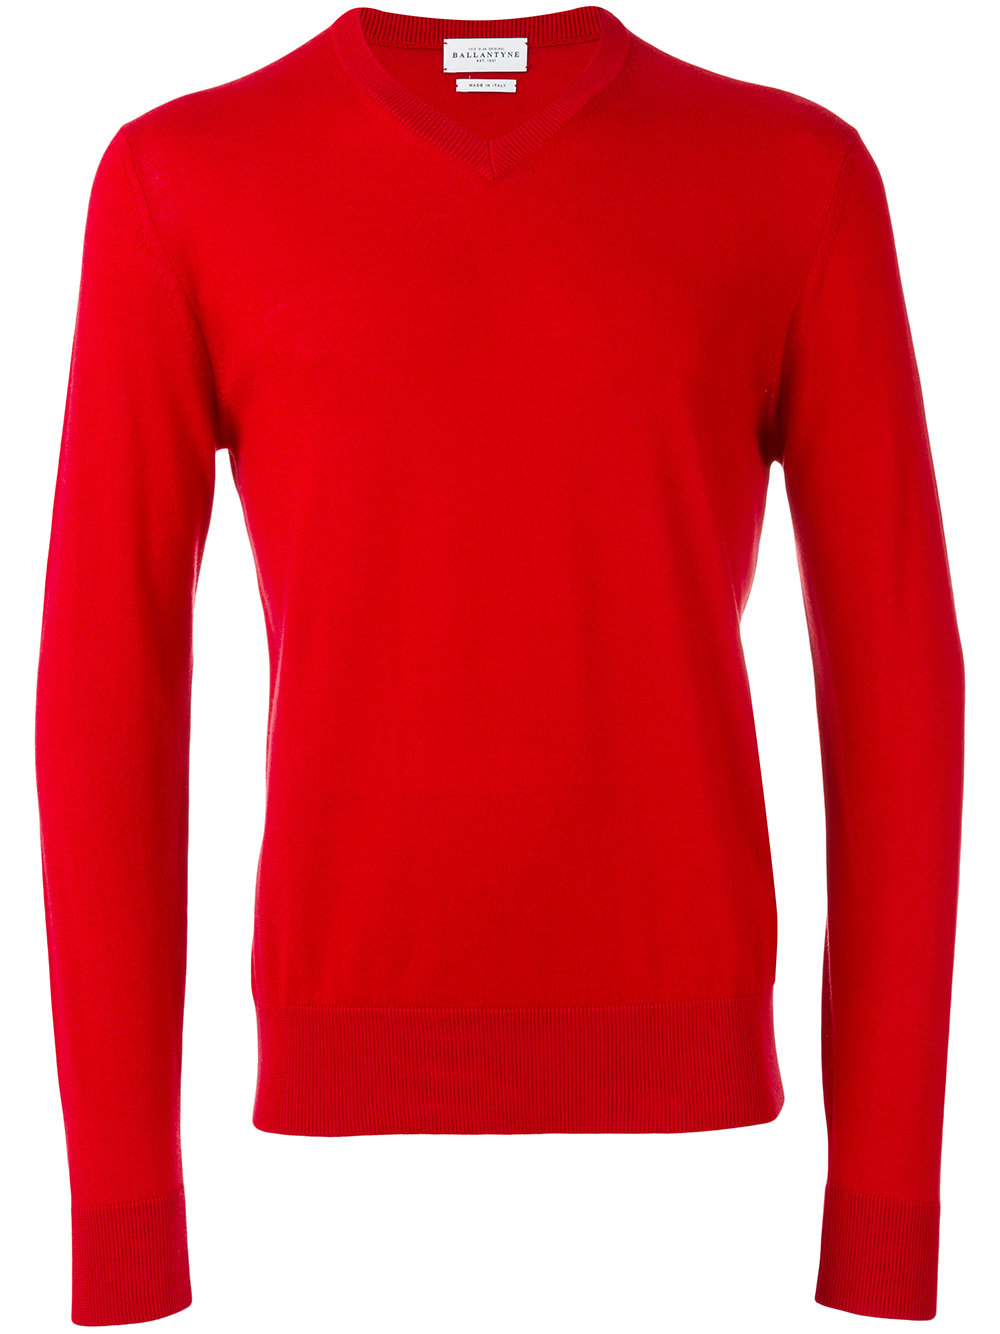 chakras-connected-to-fashion-red-sweater.jpg